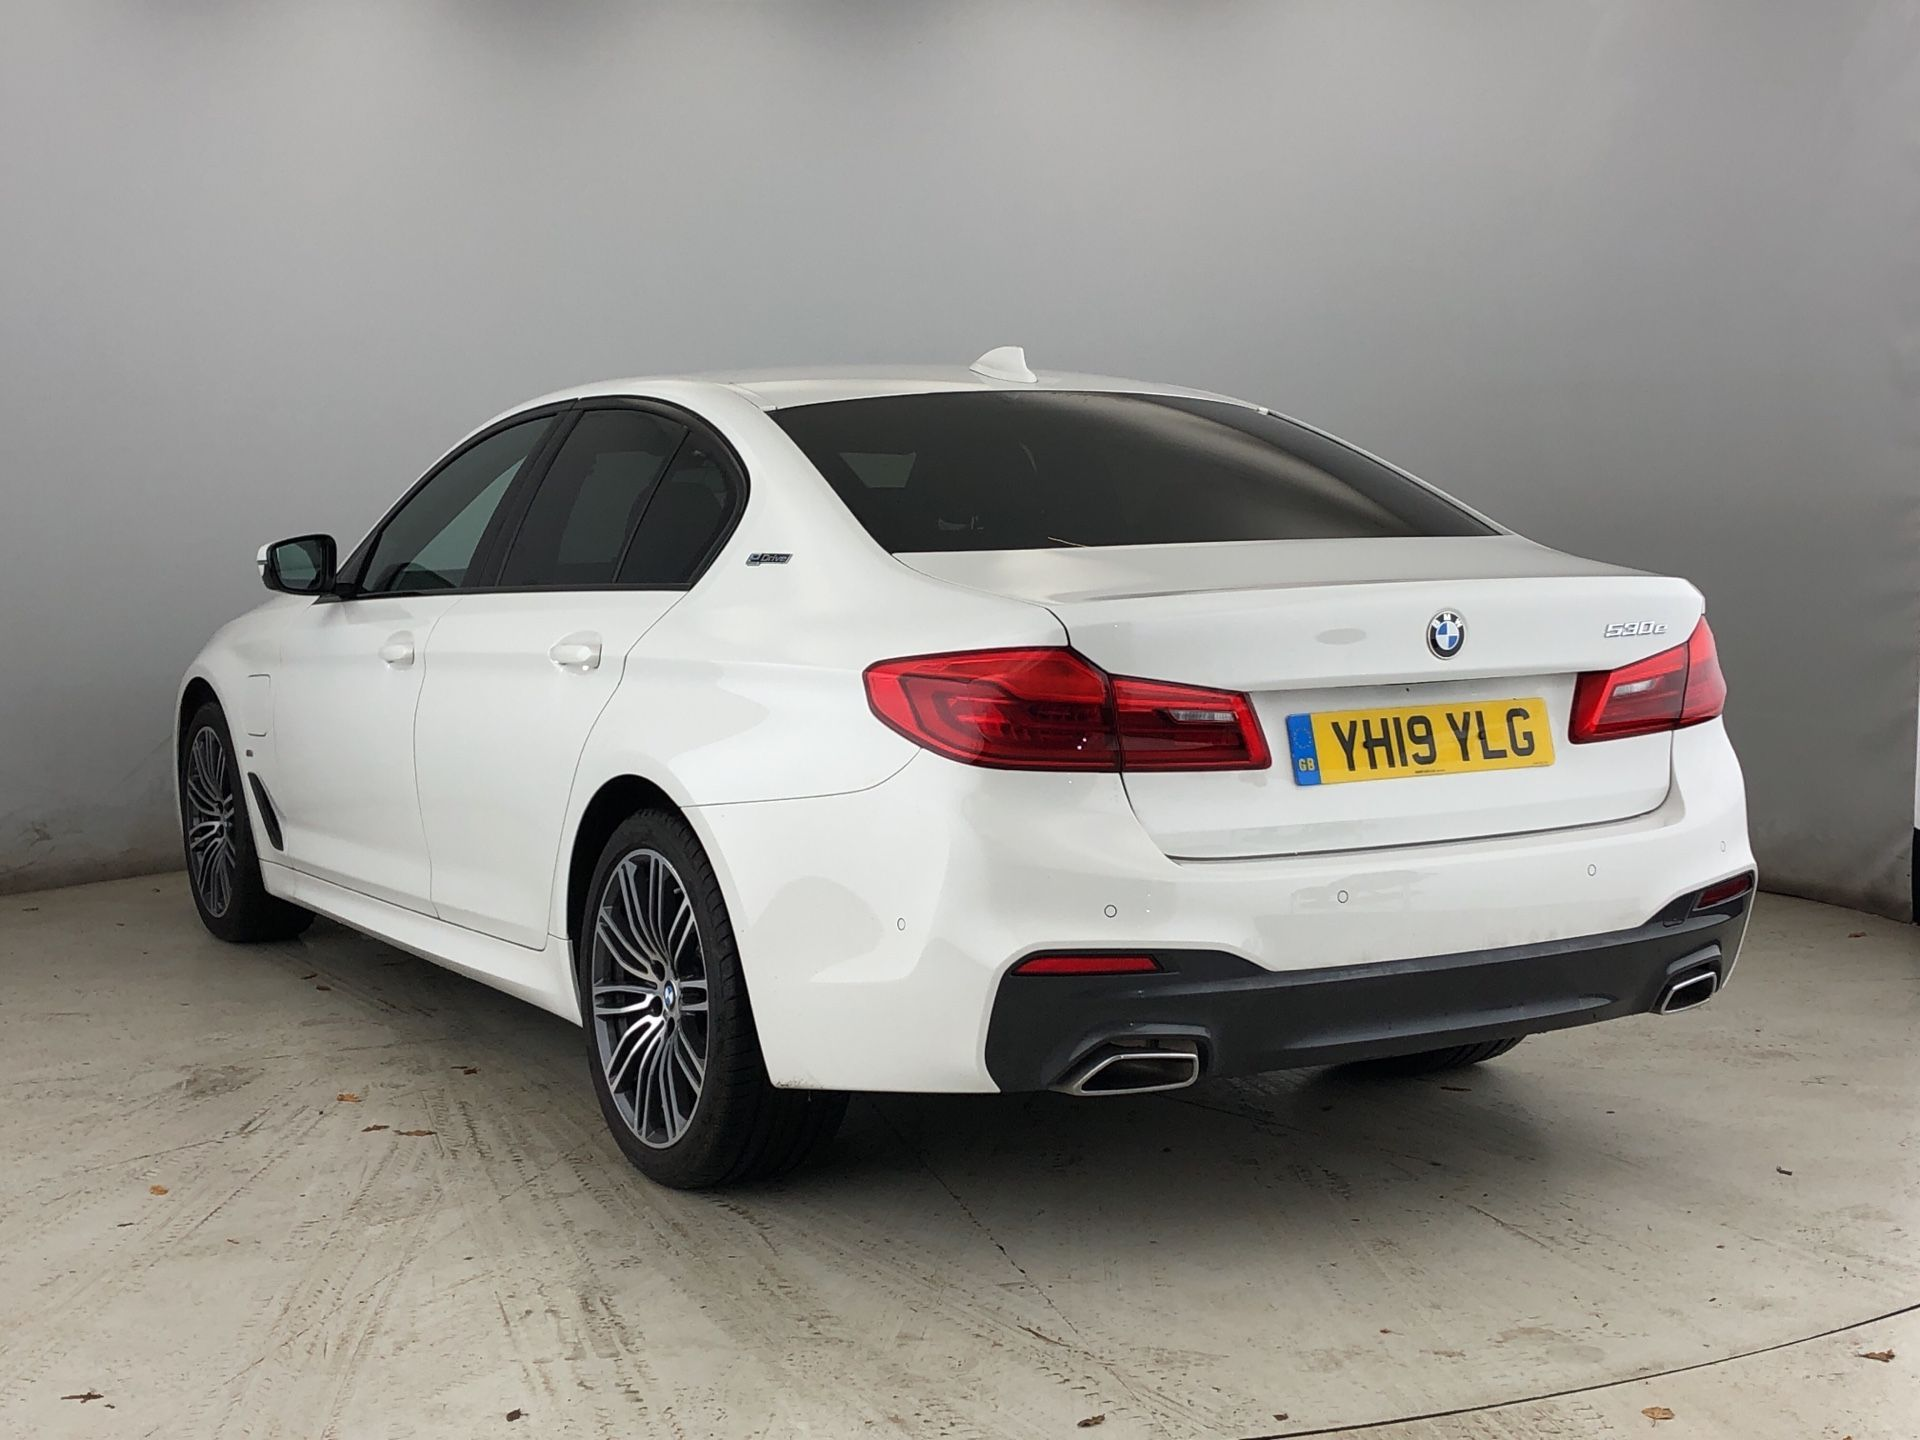 Image 2 - BMW 530e M Sport iPerformance Saloon (YH19YLG)